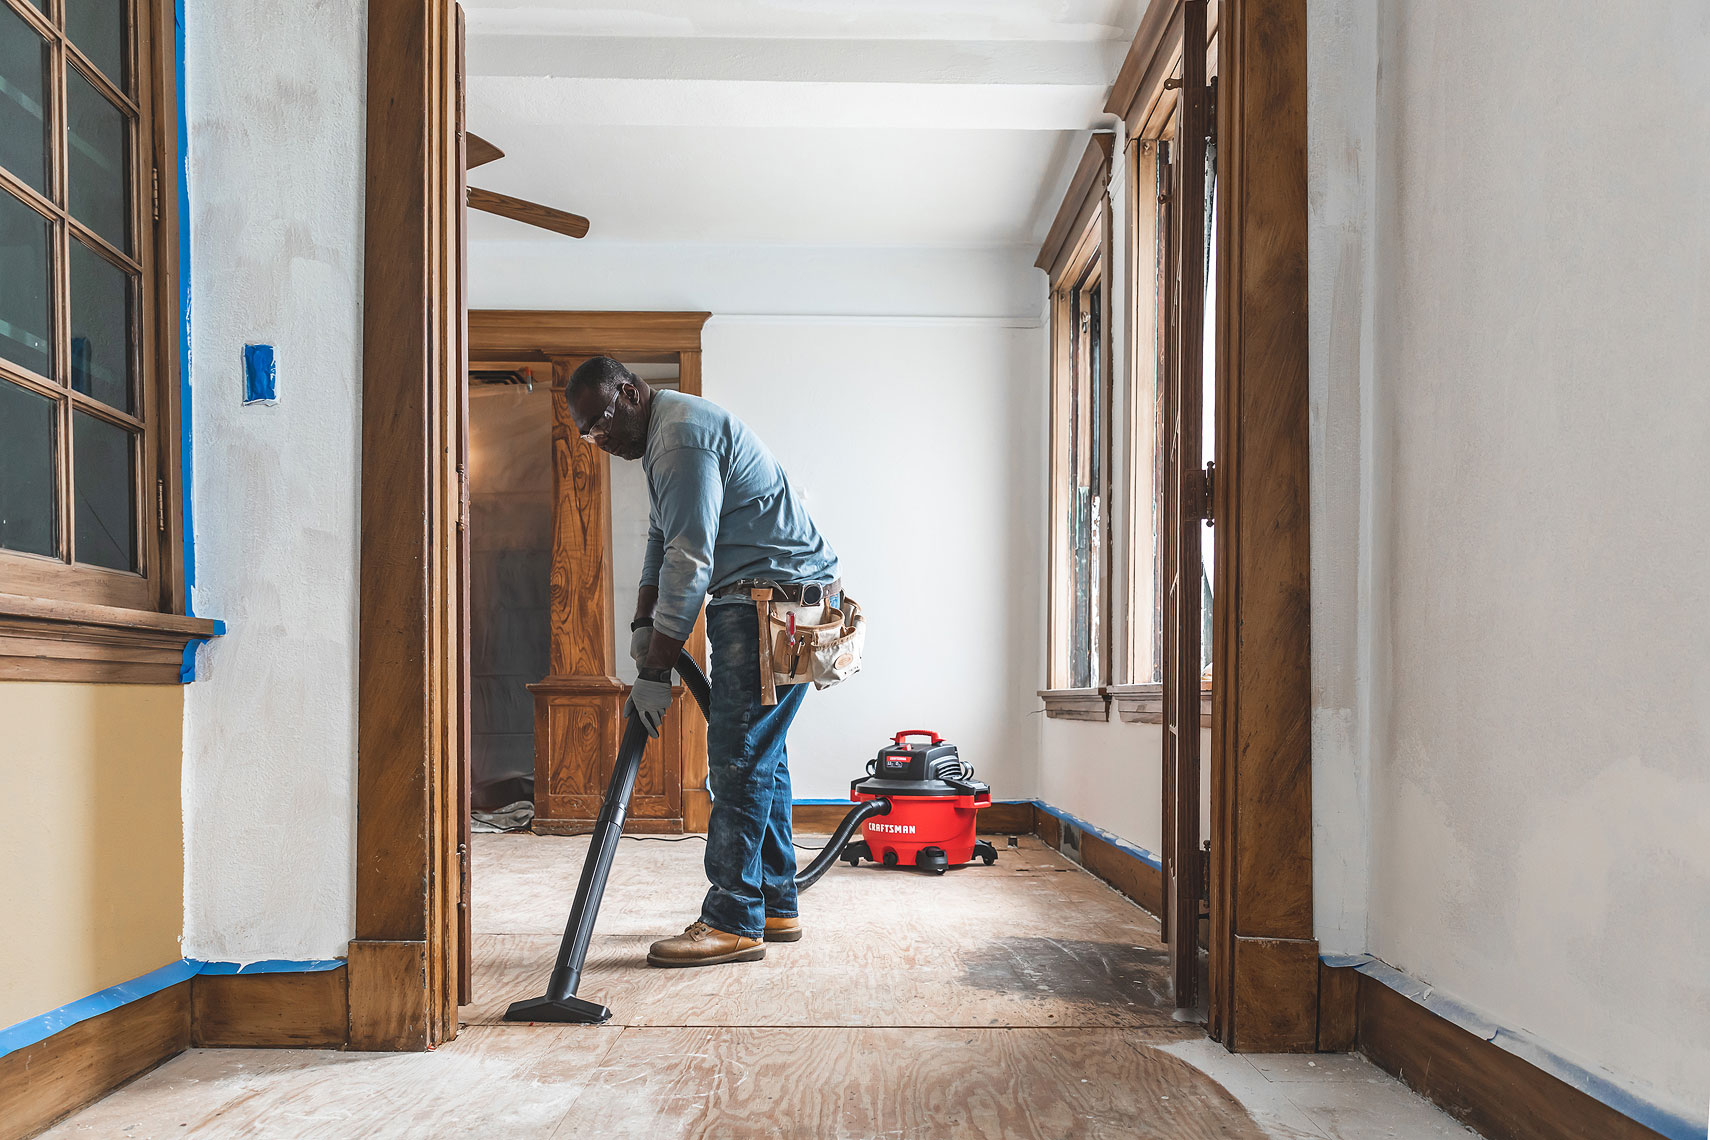 Craftsman Tools 12Gallon Wet/Dry Vacuum | Man vacuuming in a room remodel | John Fedele Product Photography